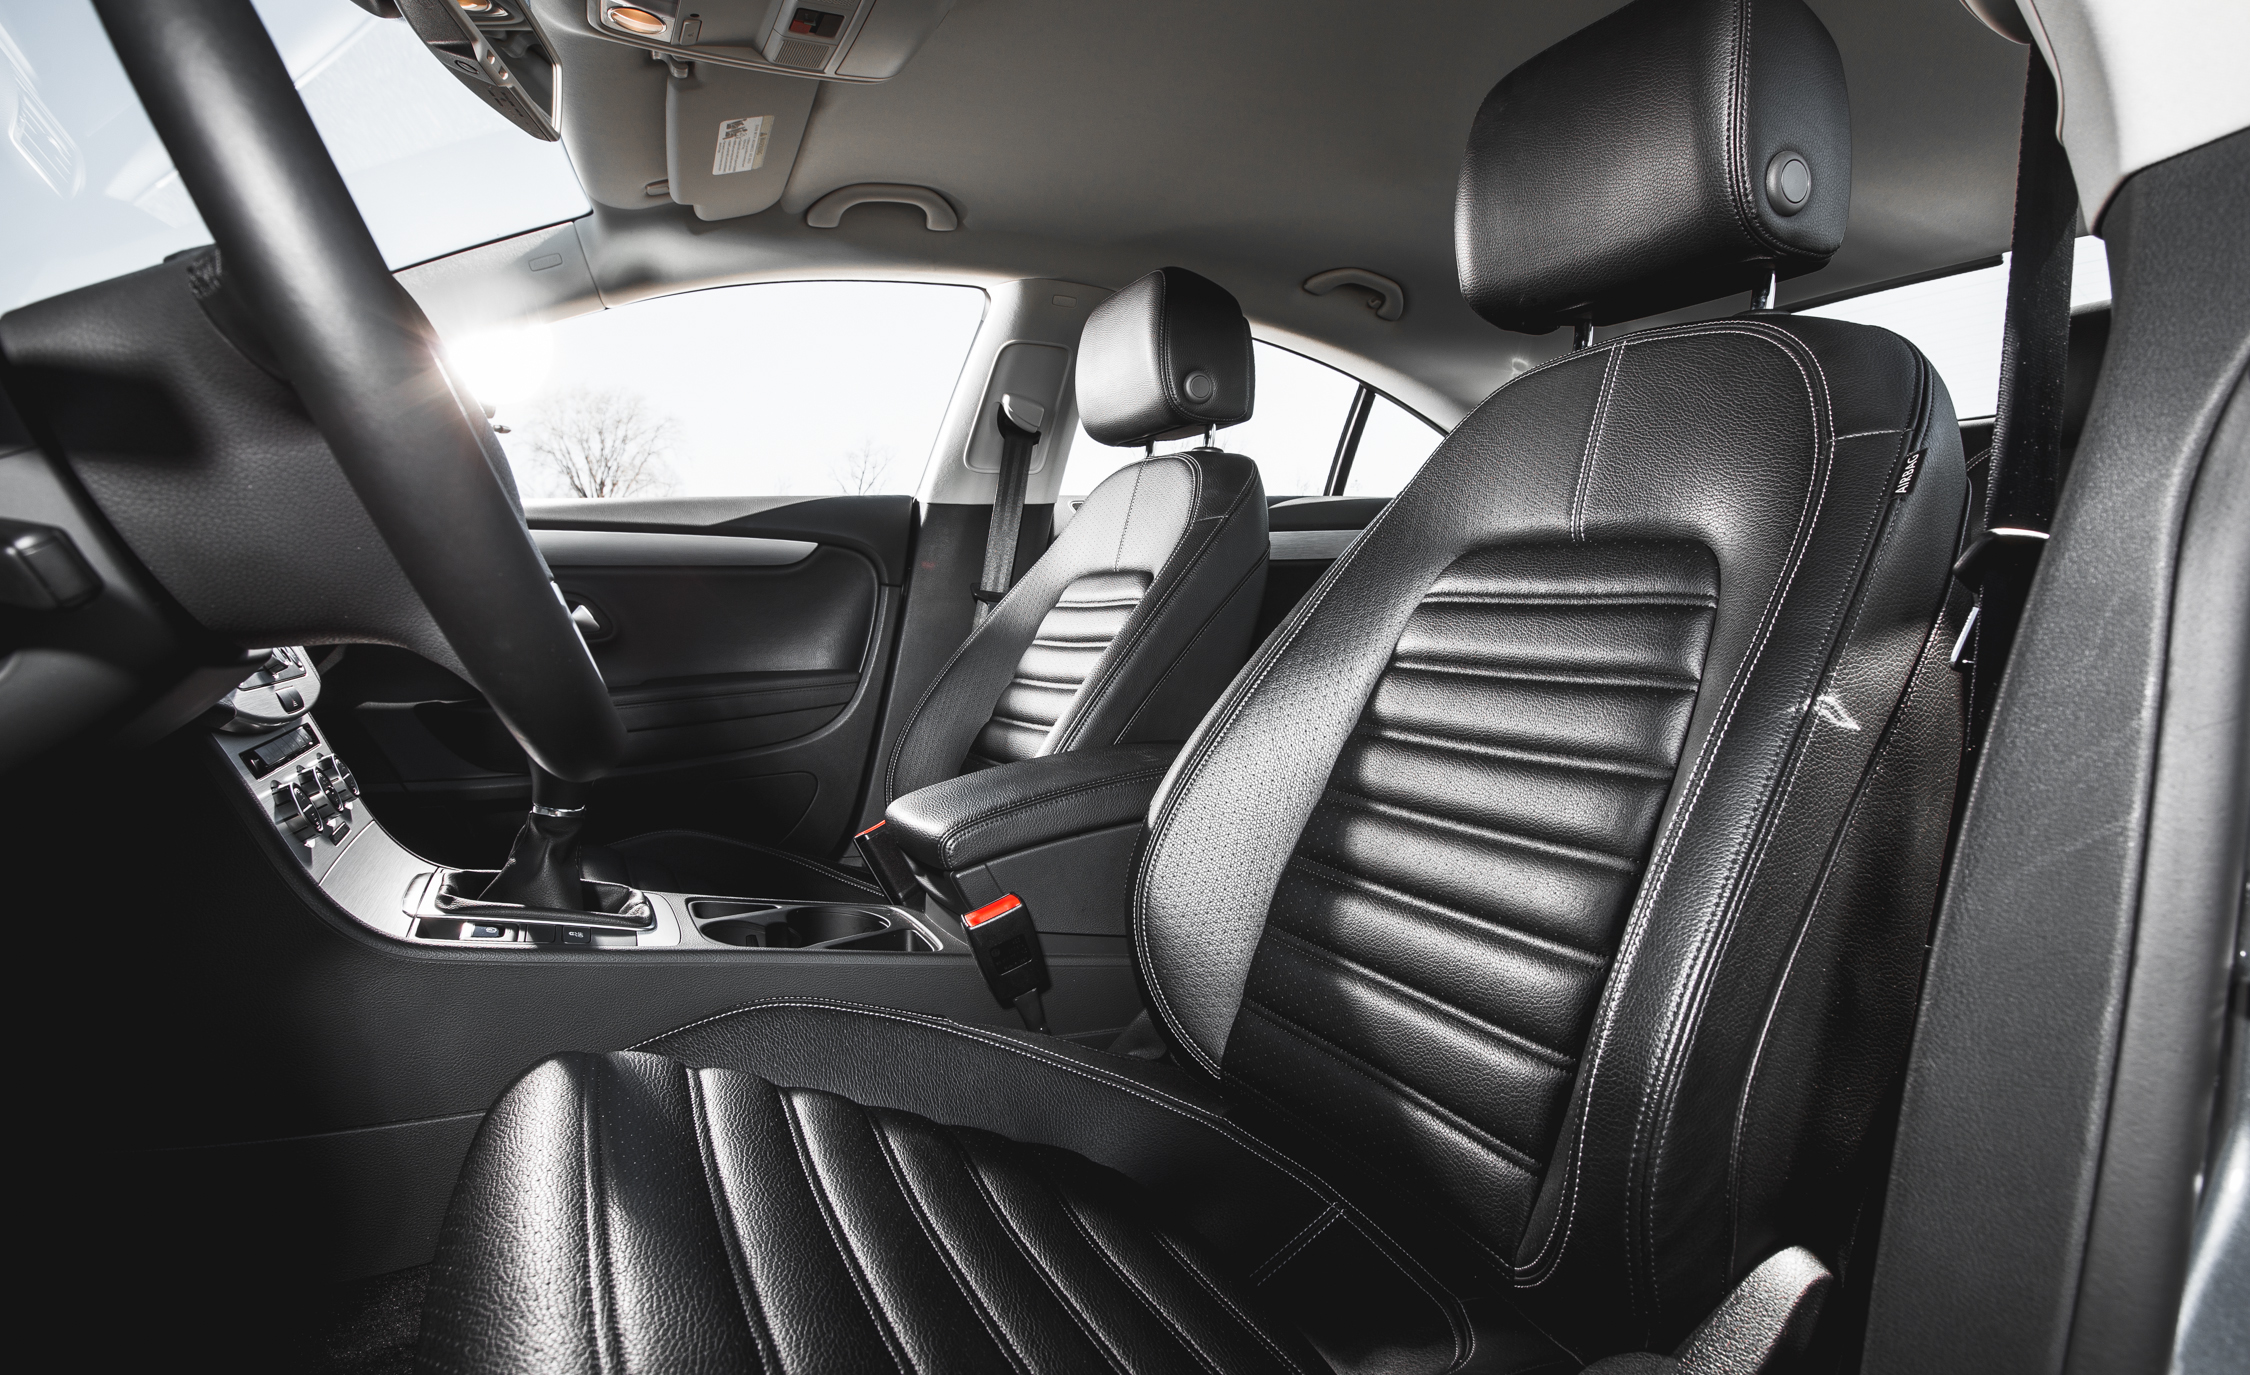 2015 Volkswagen CC Sport Interior (Photo 15 of 15)